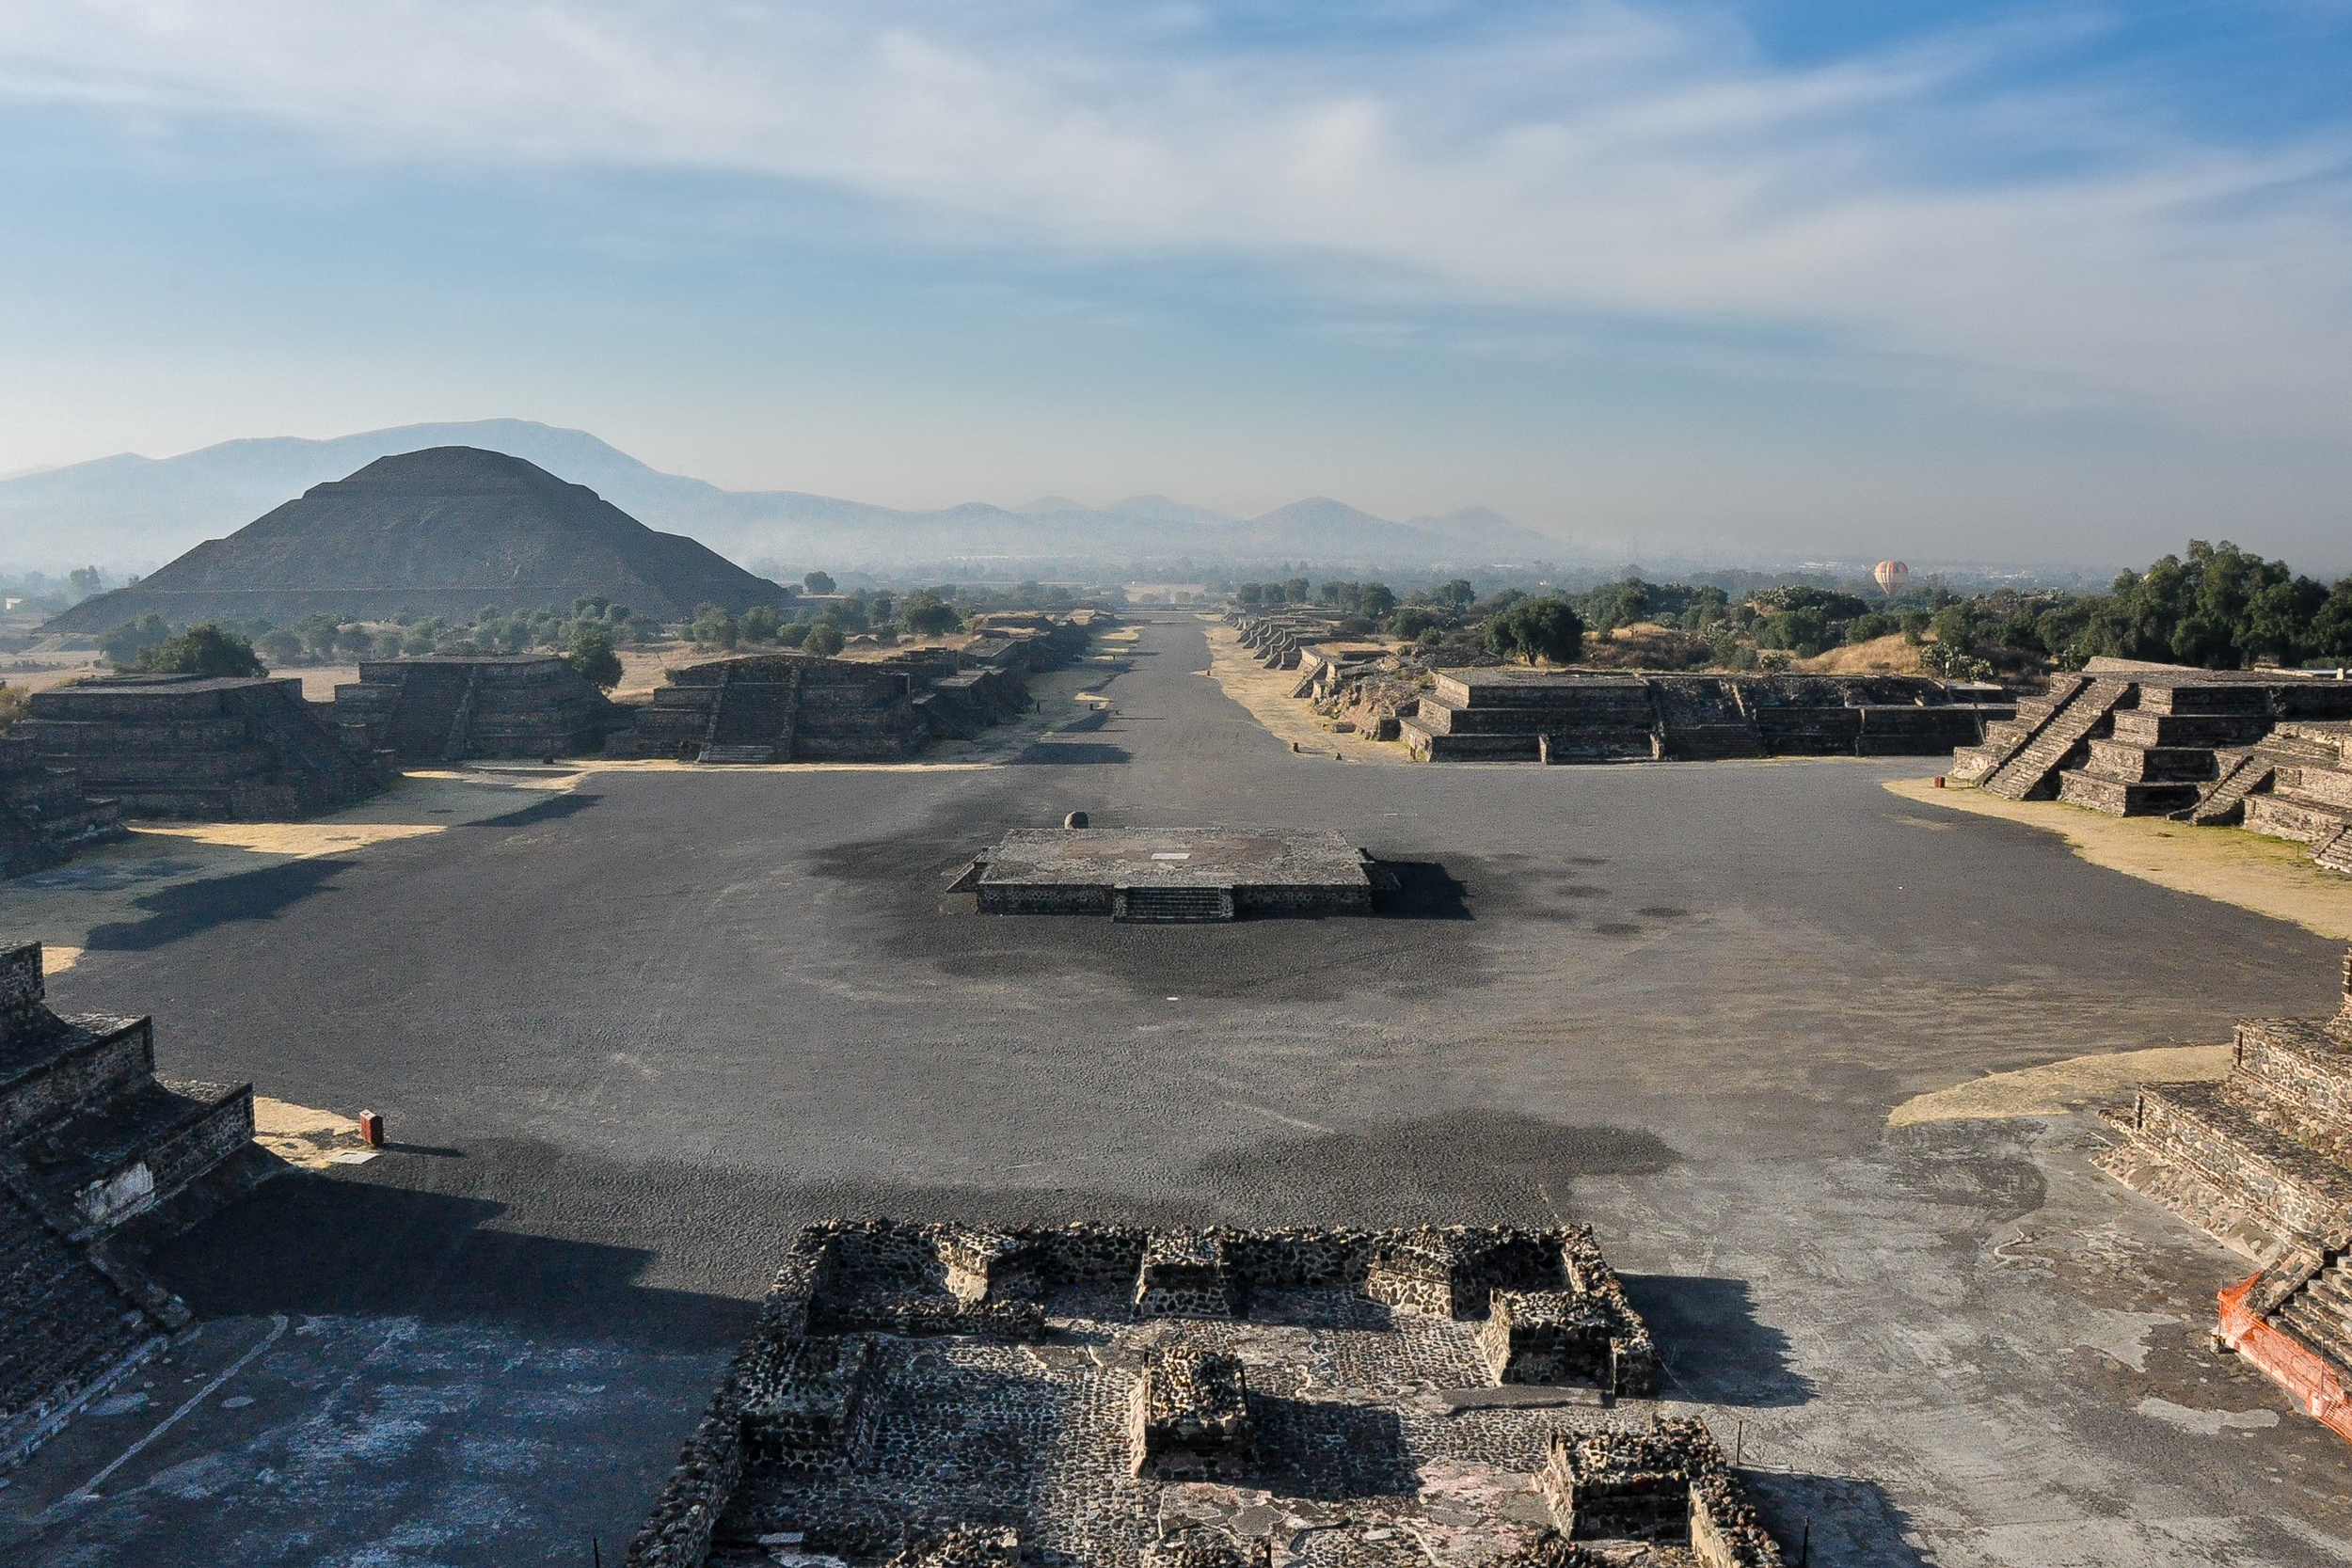 Avenue of the Dead - Teotihuacan (Mexico)